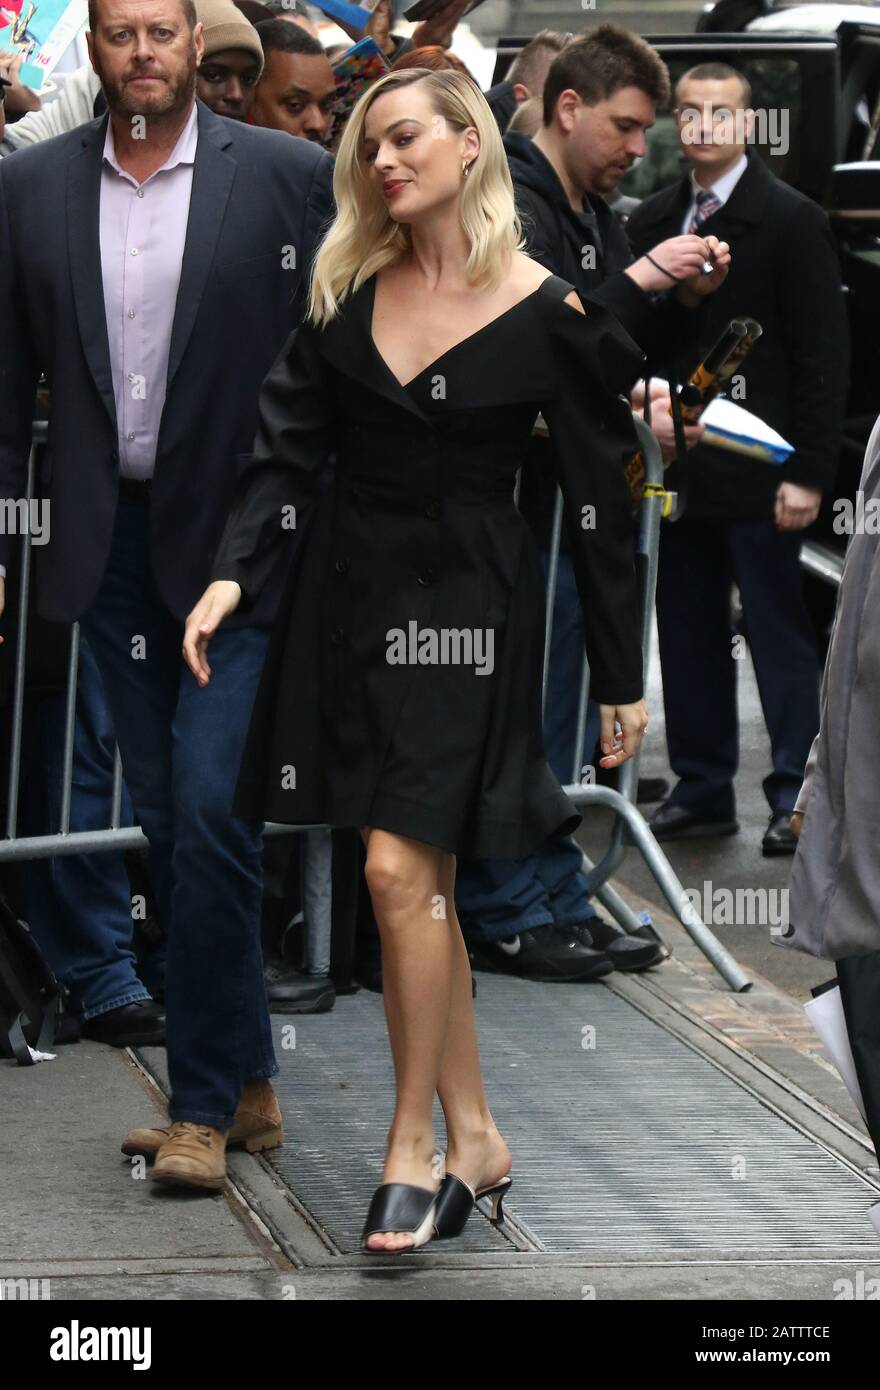 New York Ny Usa 04th Feb 2020 Margot Robbie At Abc S The View Promoting Birds Of